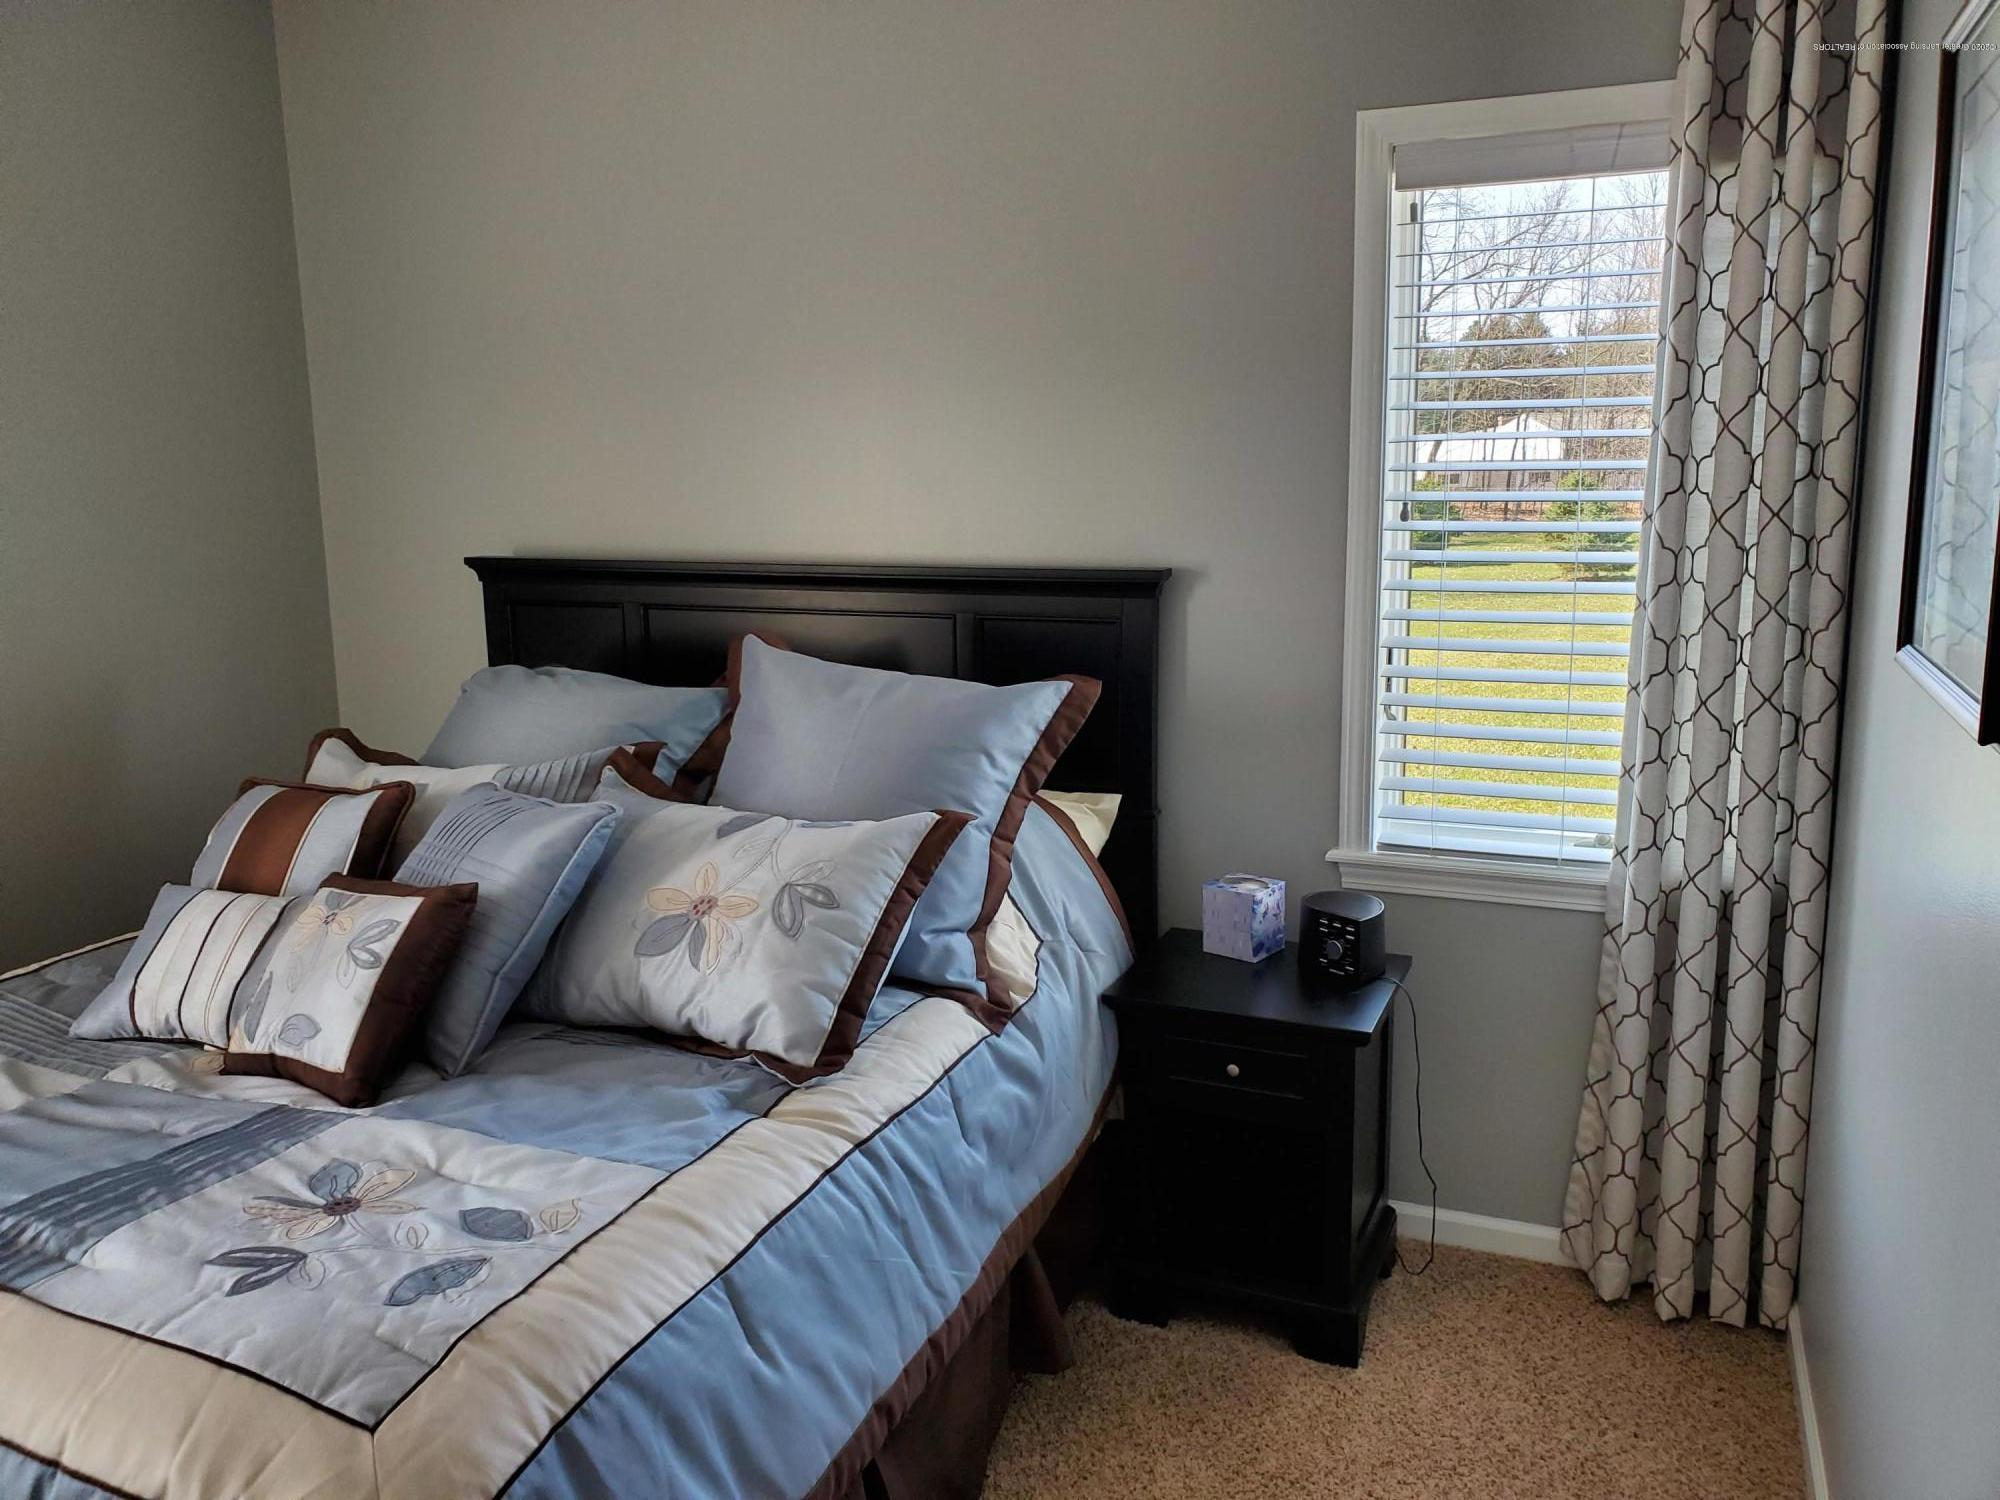 558 N Wheaton Rd - Bedroom 2 - 36